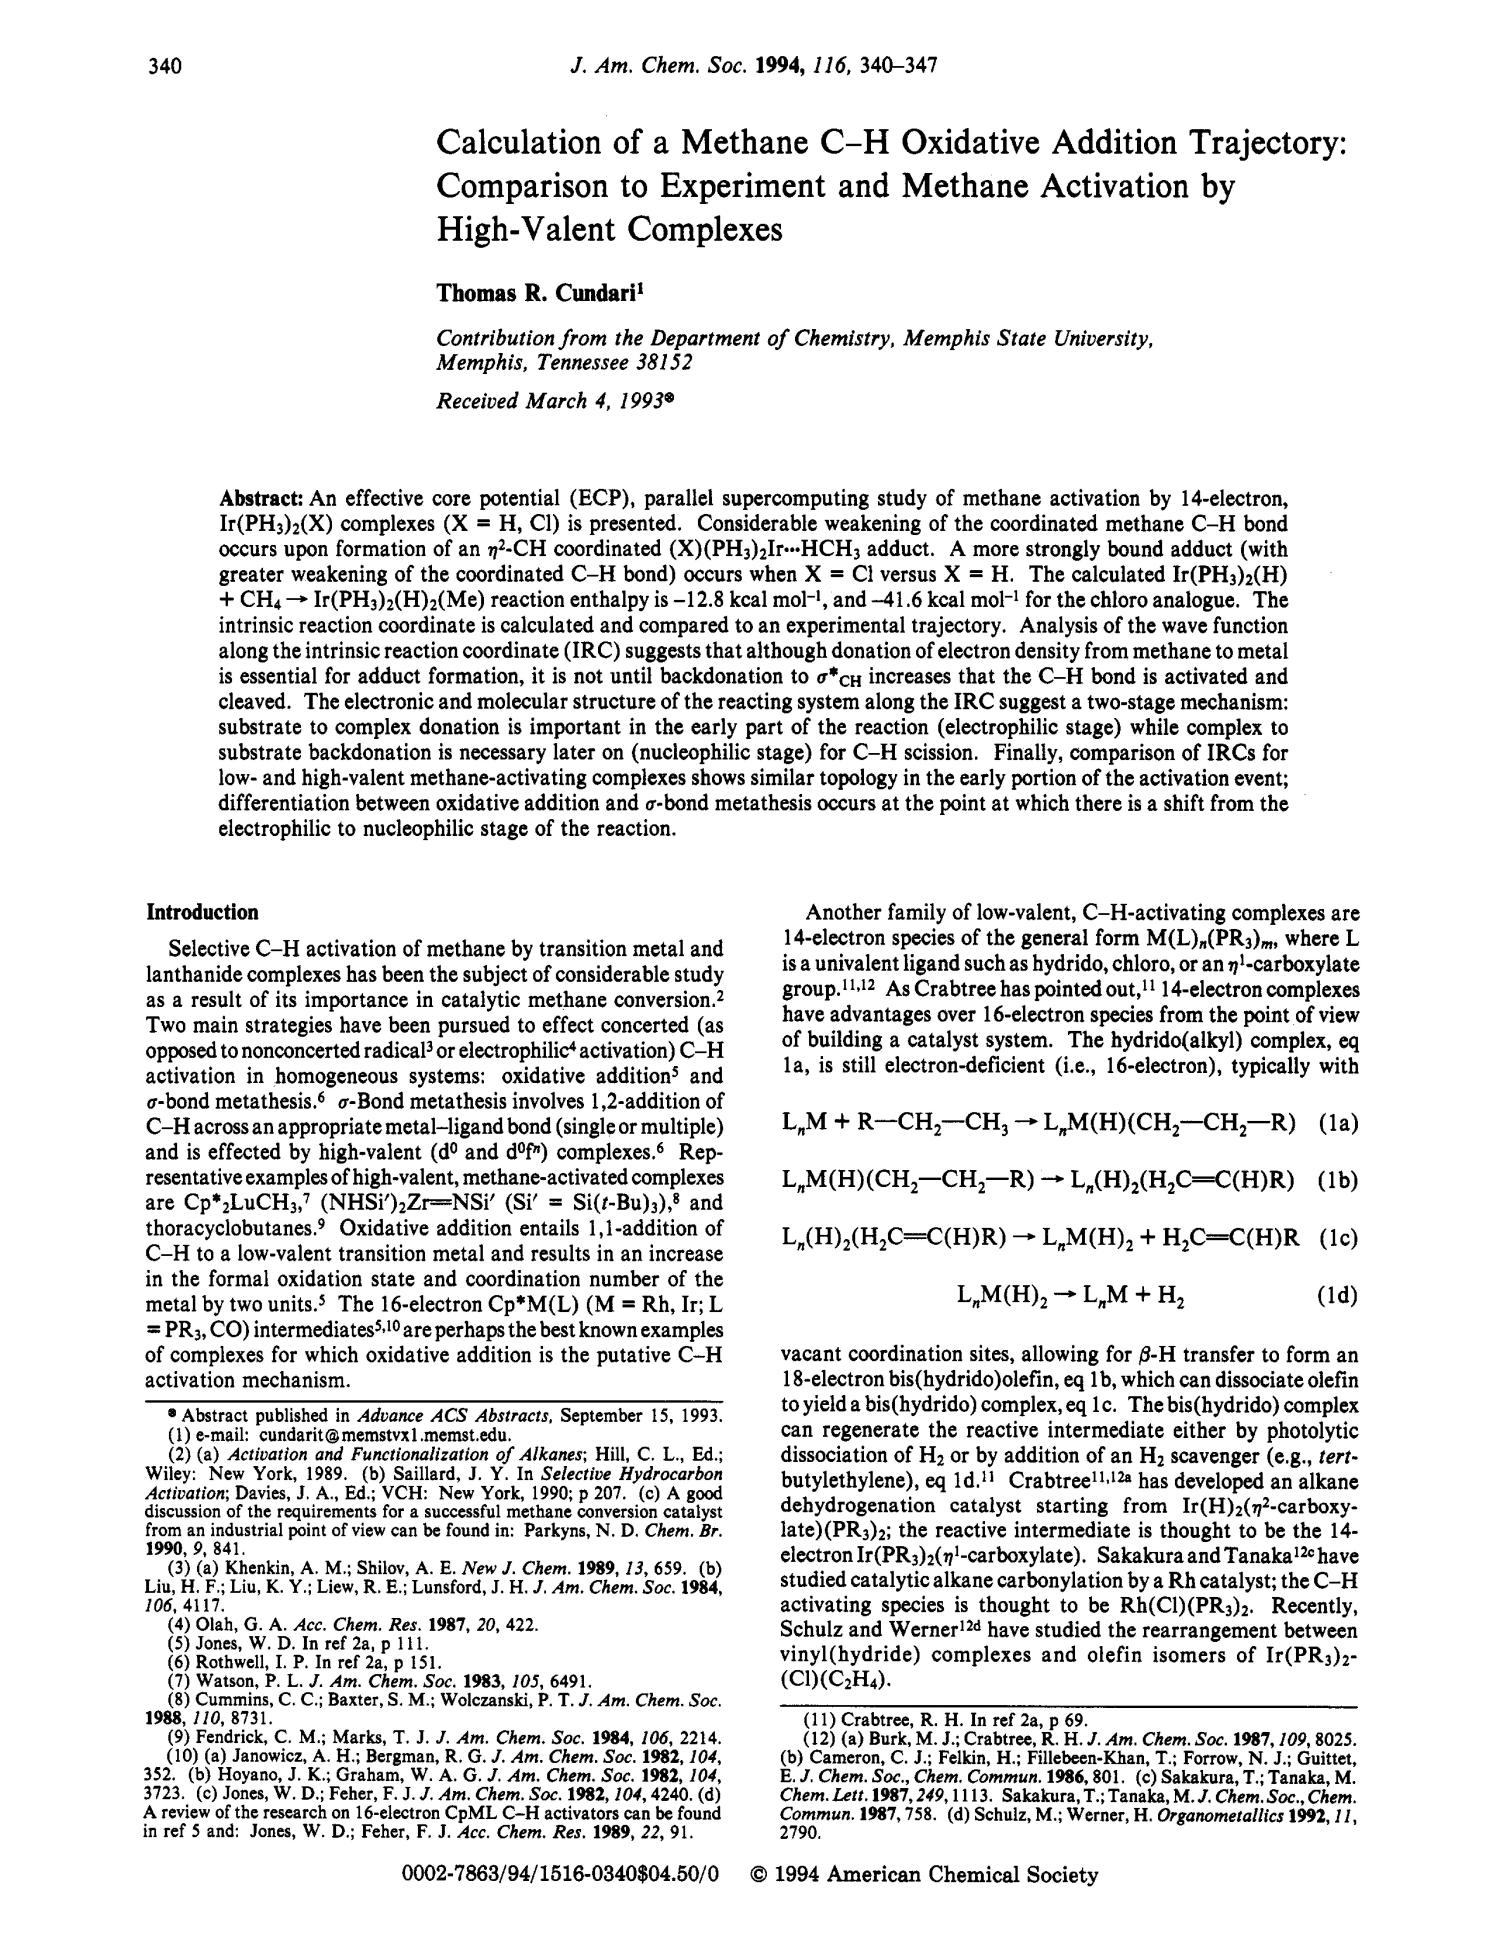 Calculation of a Methane C-H Oxidative Addition Trajectory: Comparison to Experiment and Methane Activation by High-Valent Complexes                                                                                                      340